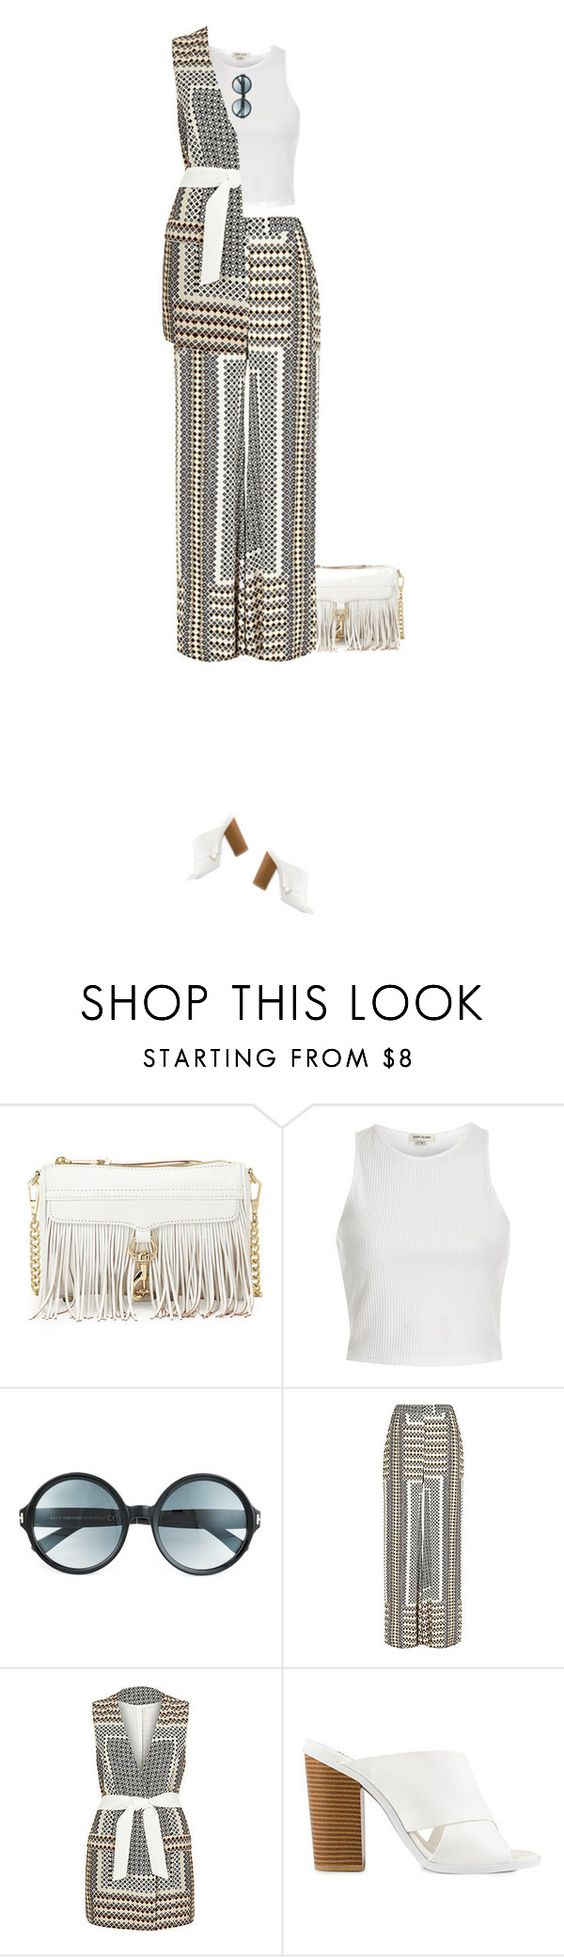 """Unbenannt #814"" by bexmuc ❤ liked on Polyvore featuring Rebecca Minkoff, River Island, Tom Ford and Packandgo"